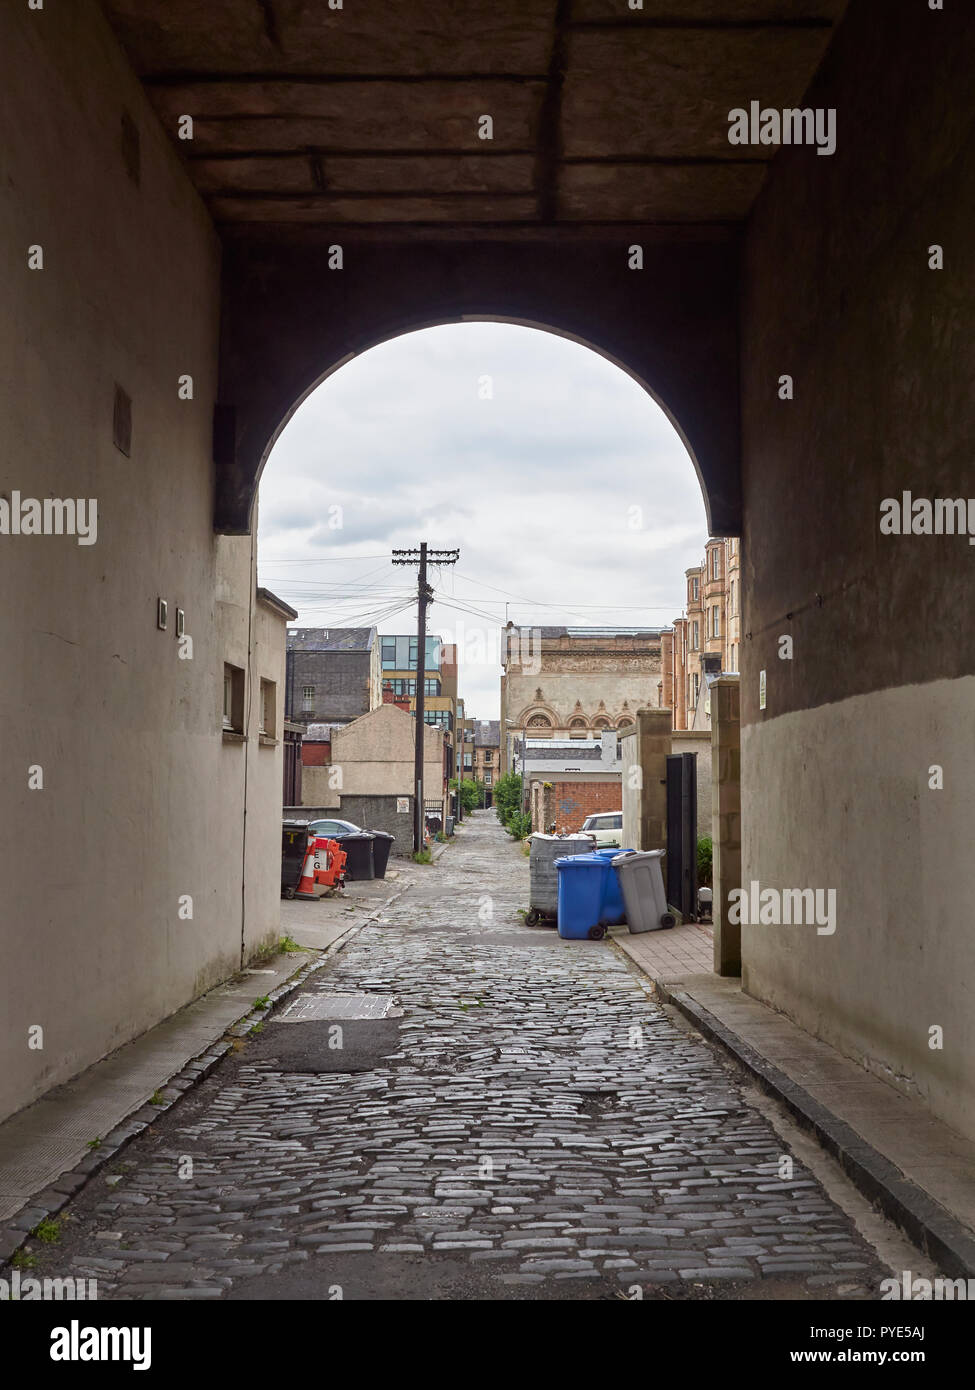 Looking down an Old Passageway with a cobbled road surface on a Cloudy Summers day in Glasgow, Scotland, UK. - Stock Image